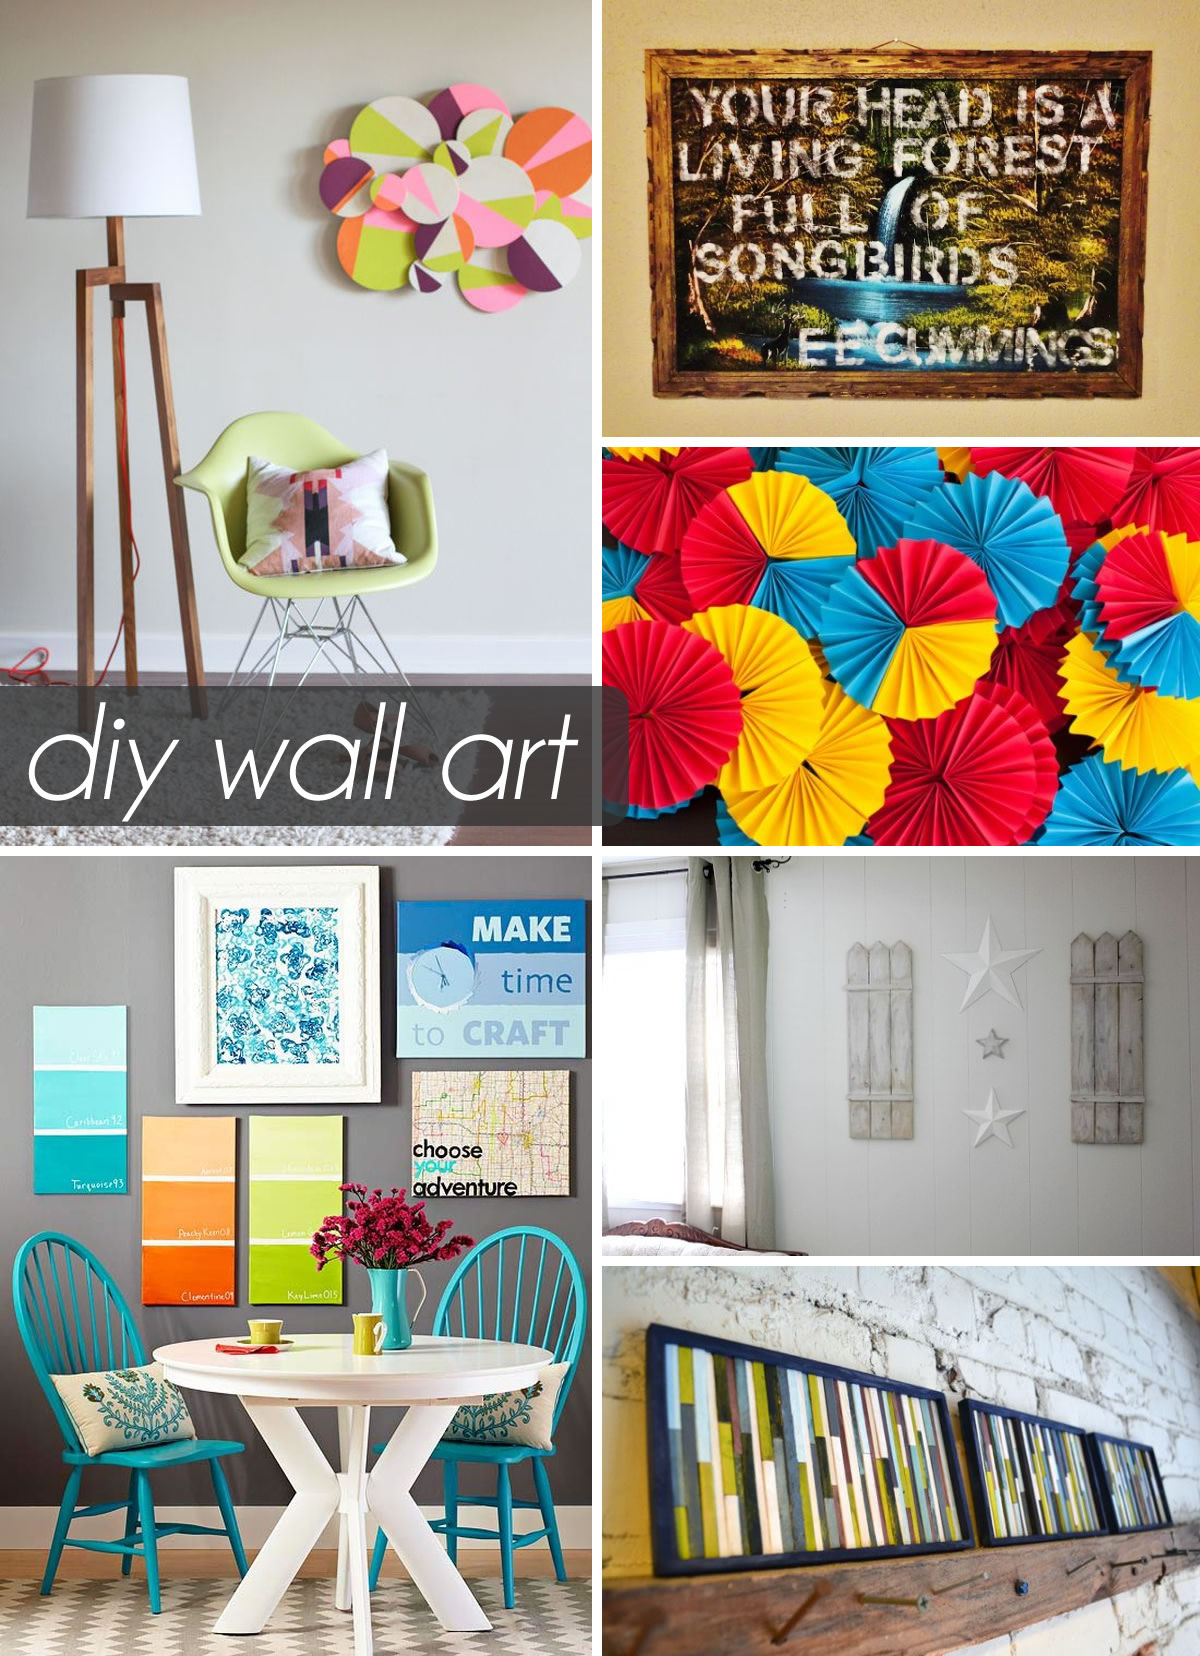 living room diy projects.  50 Beautiful DIY Wall Art Ideas For Your Home